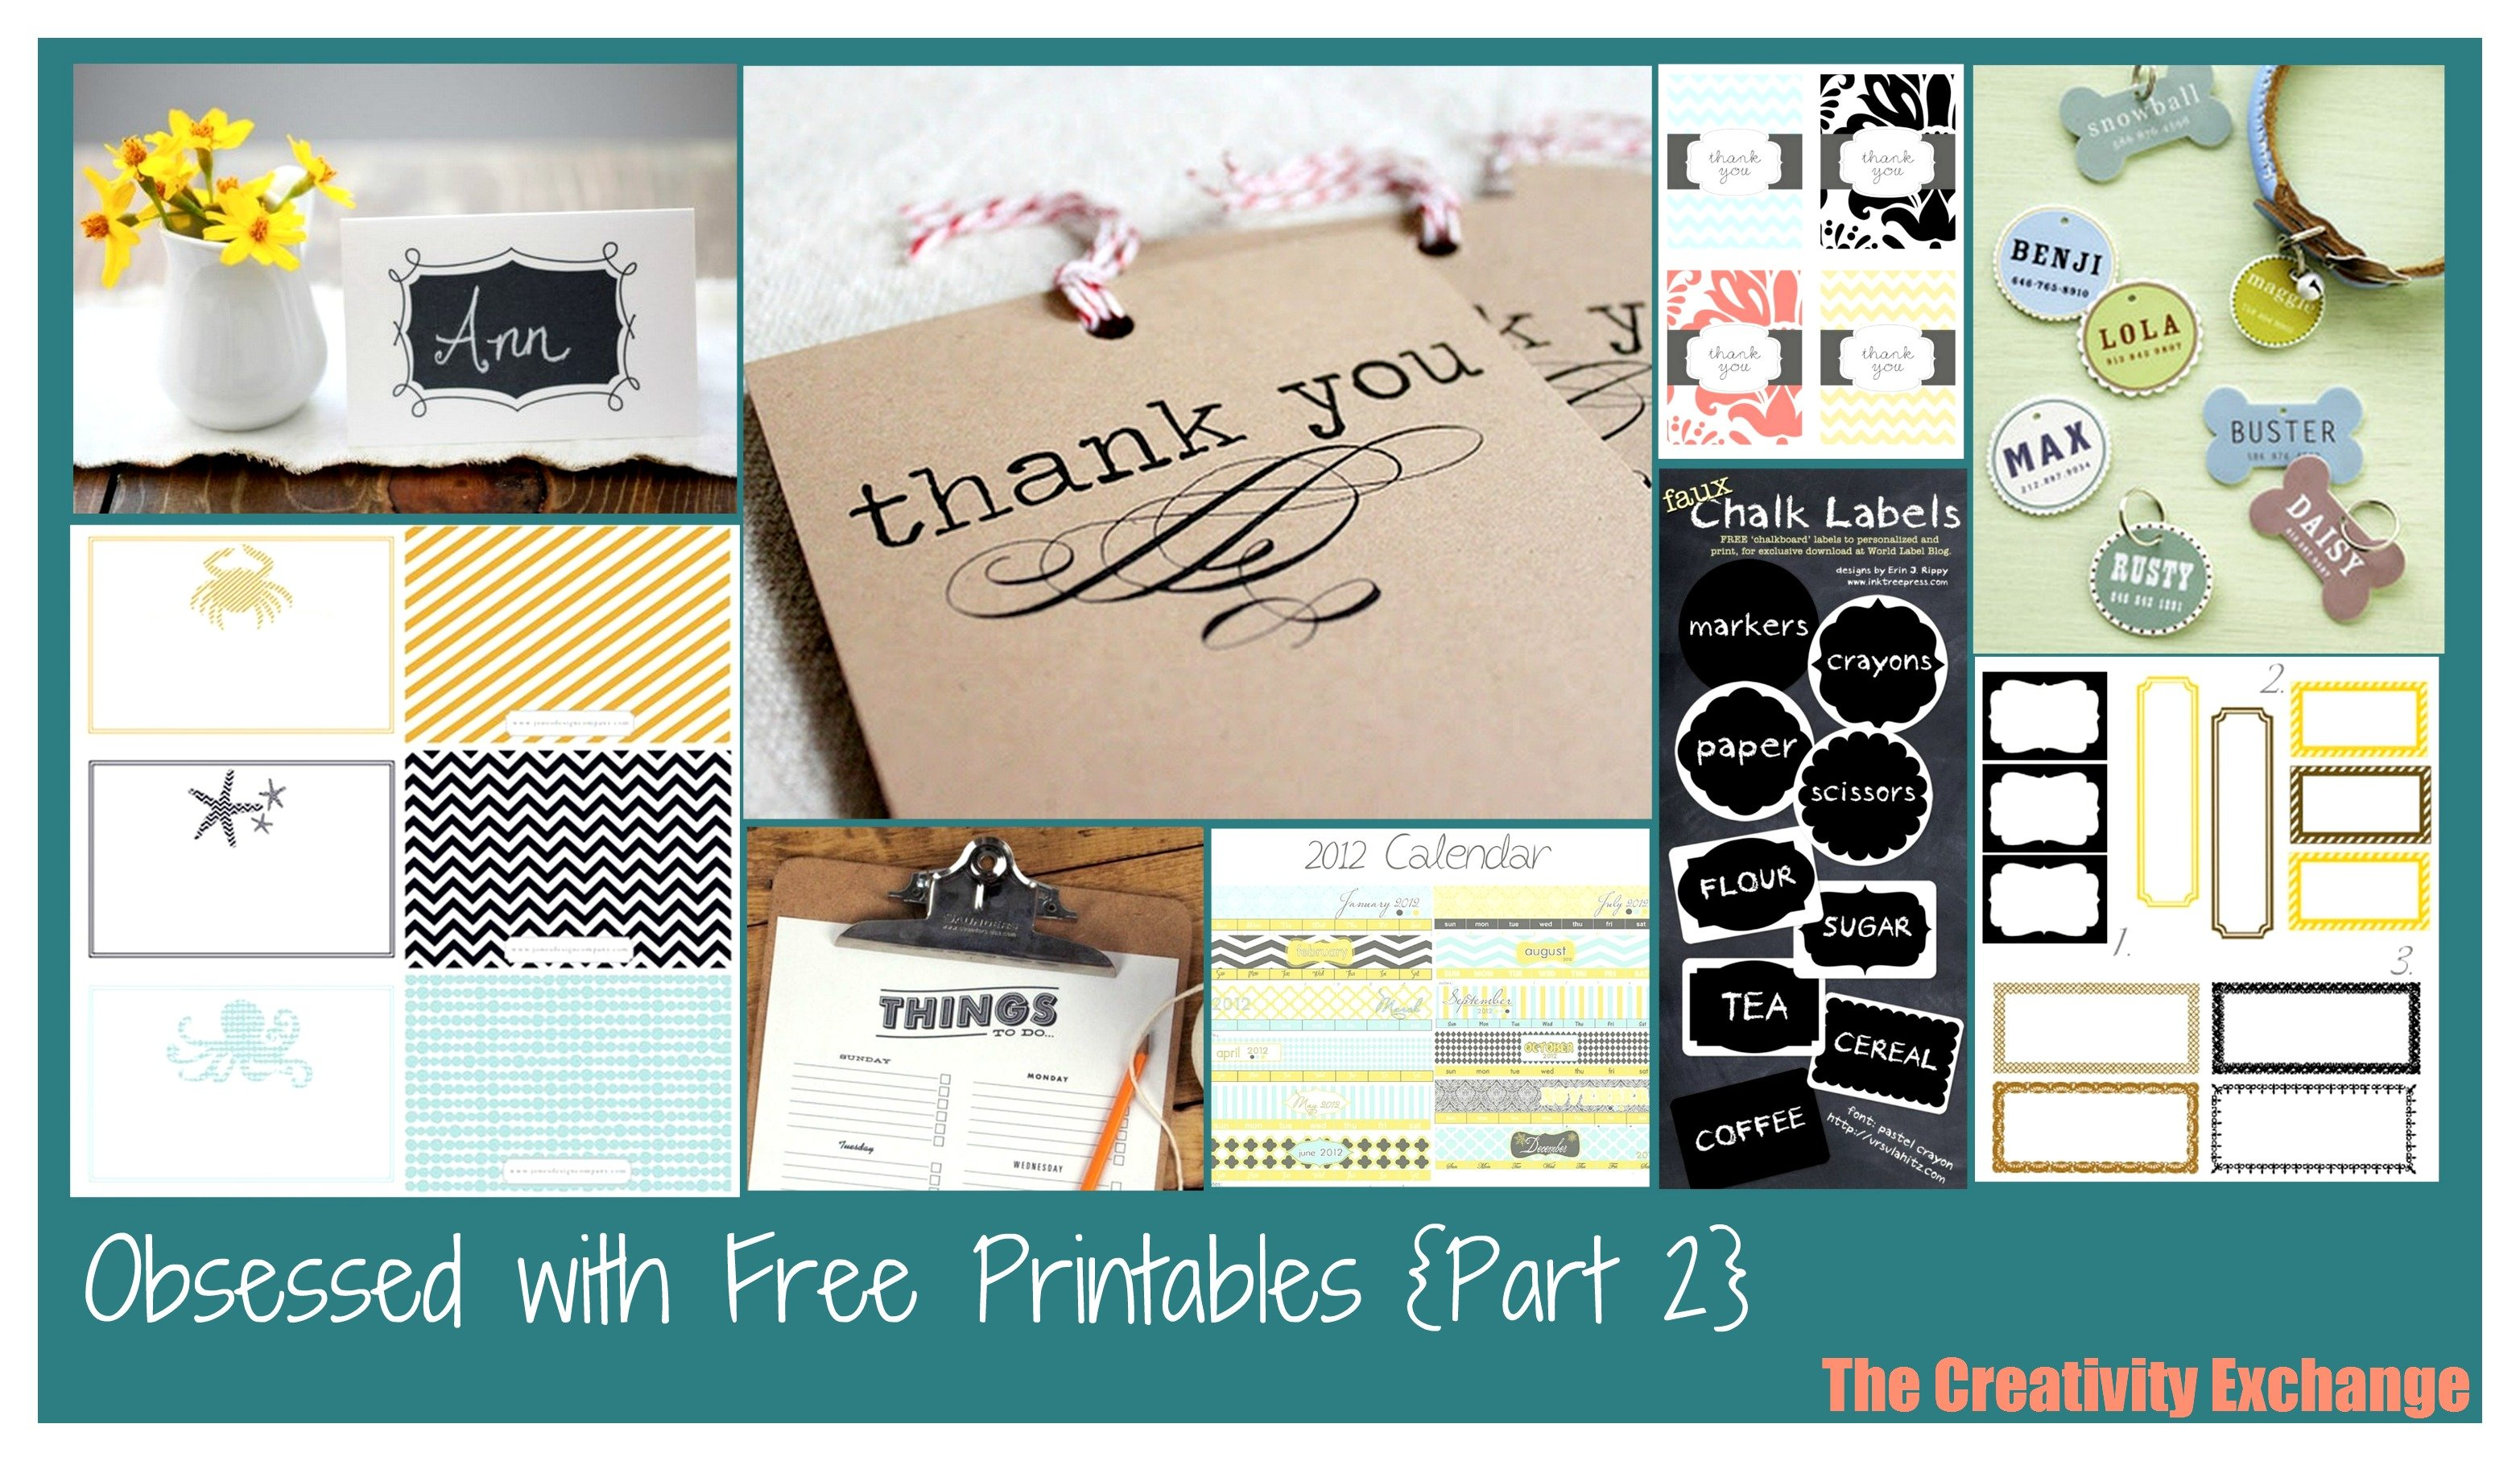 free printables printables collection of free printables - Free Online Printables